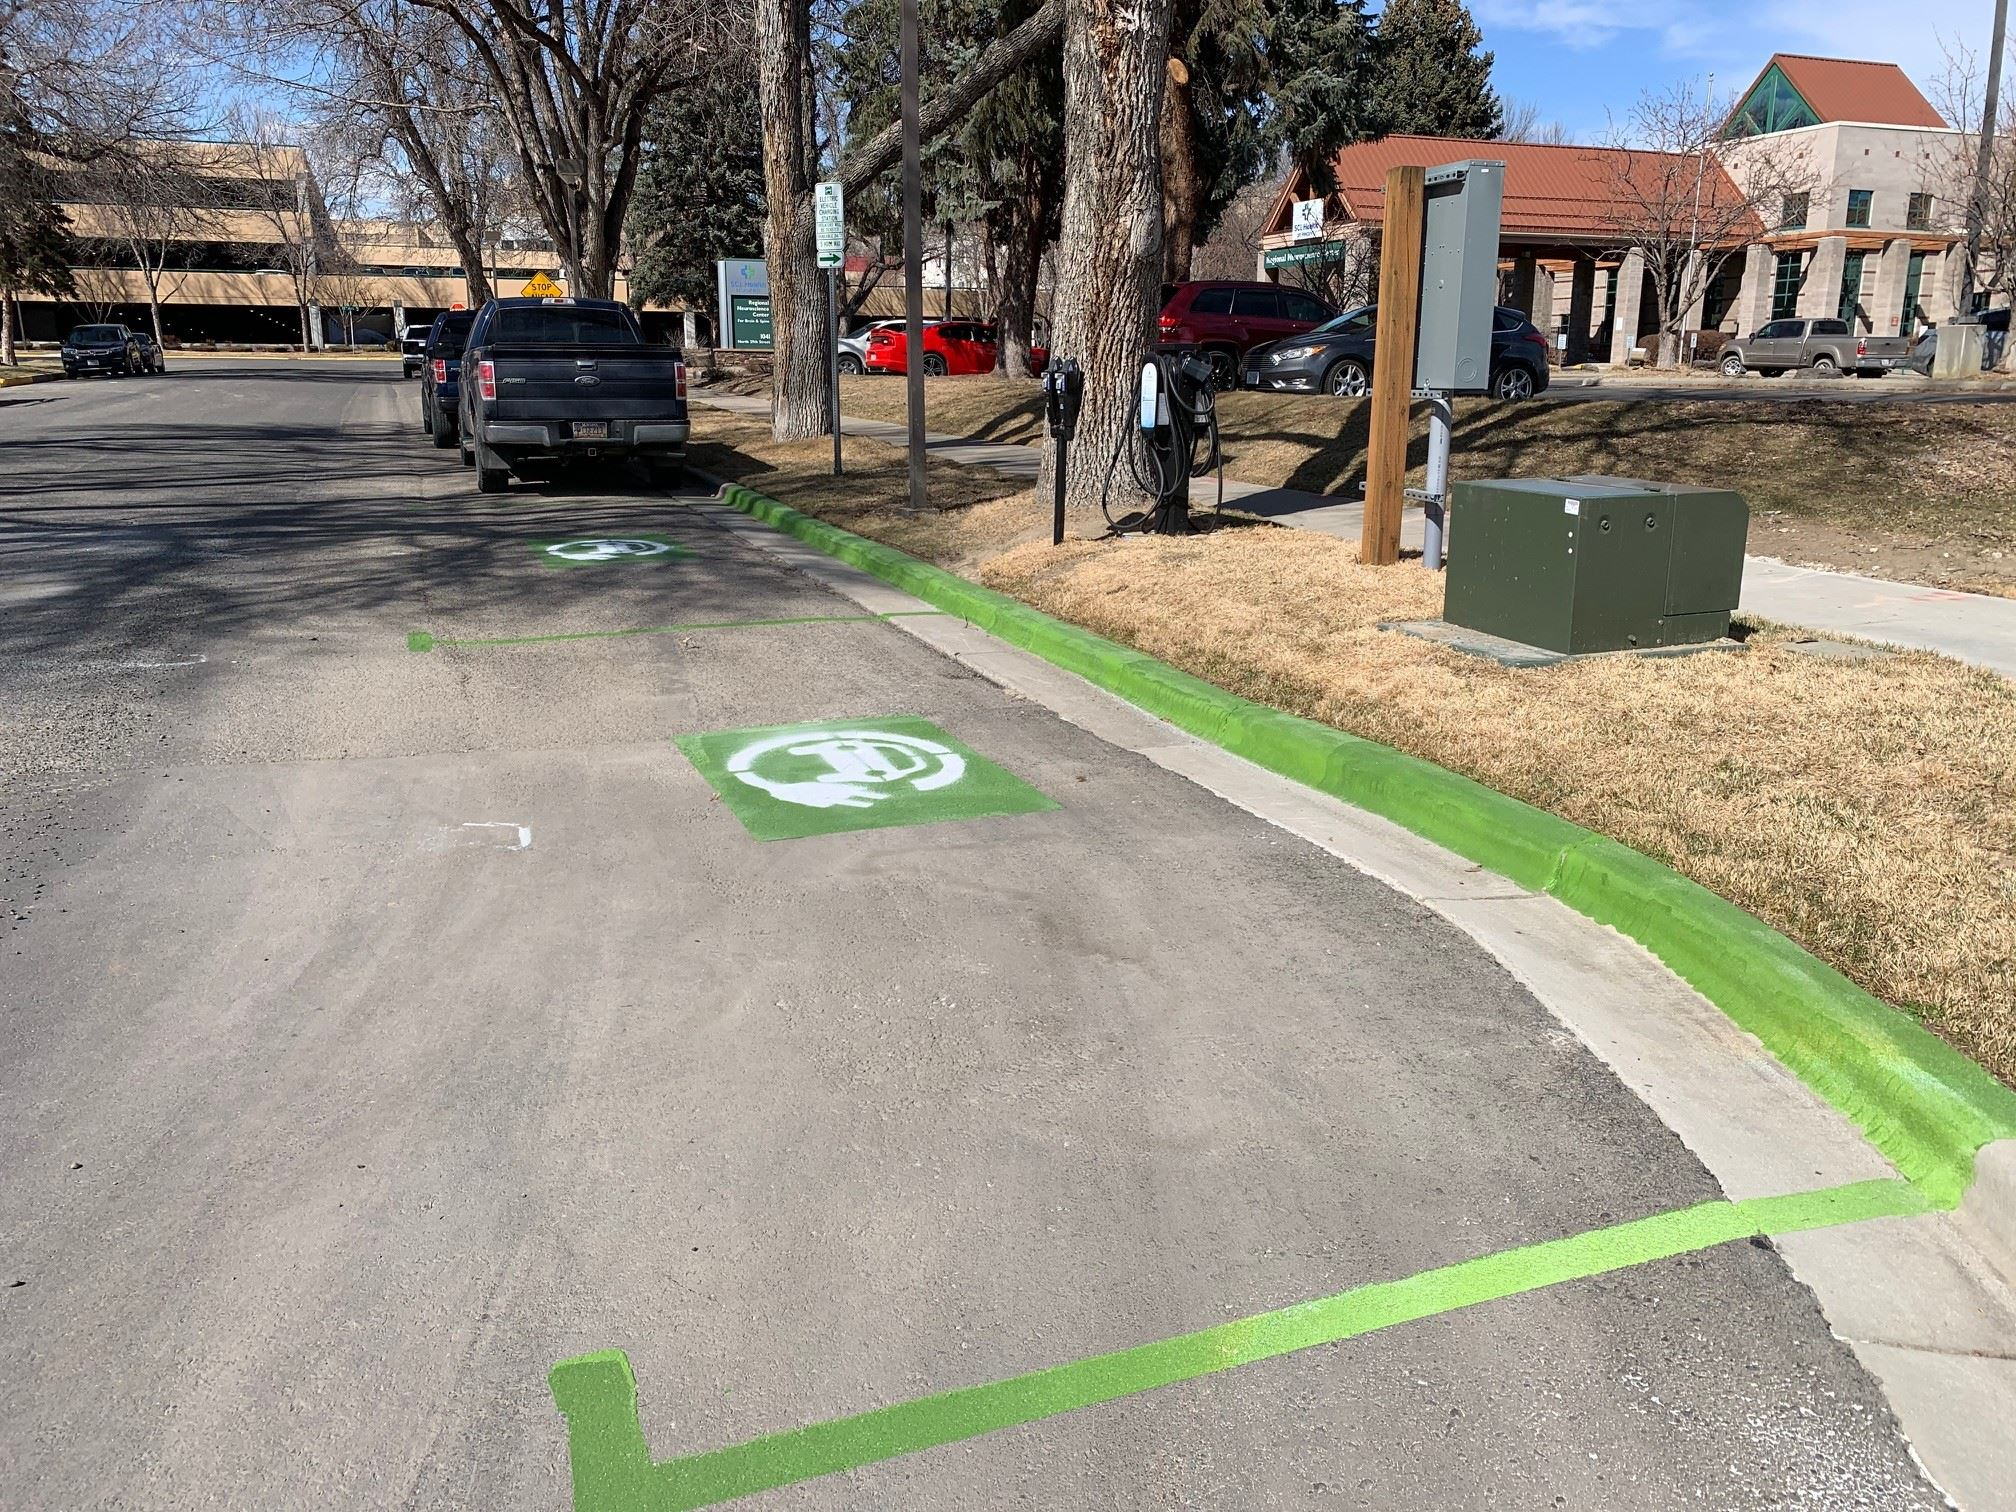 Electric car parking by hospitals)